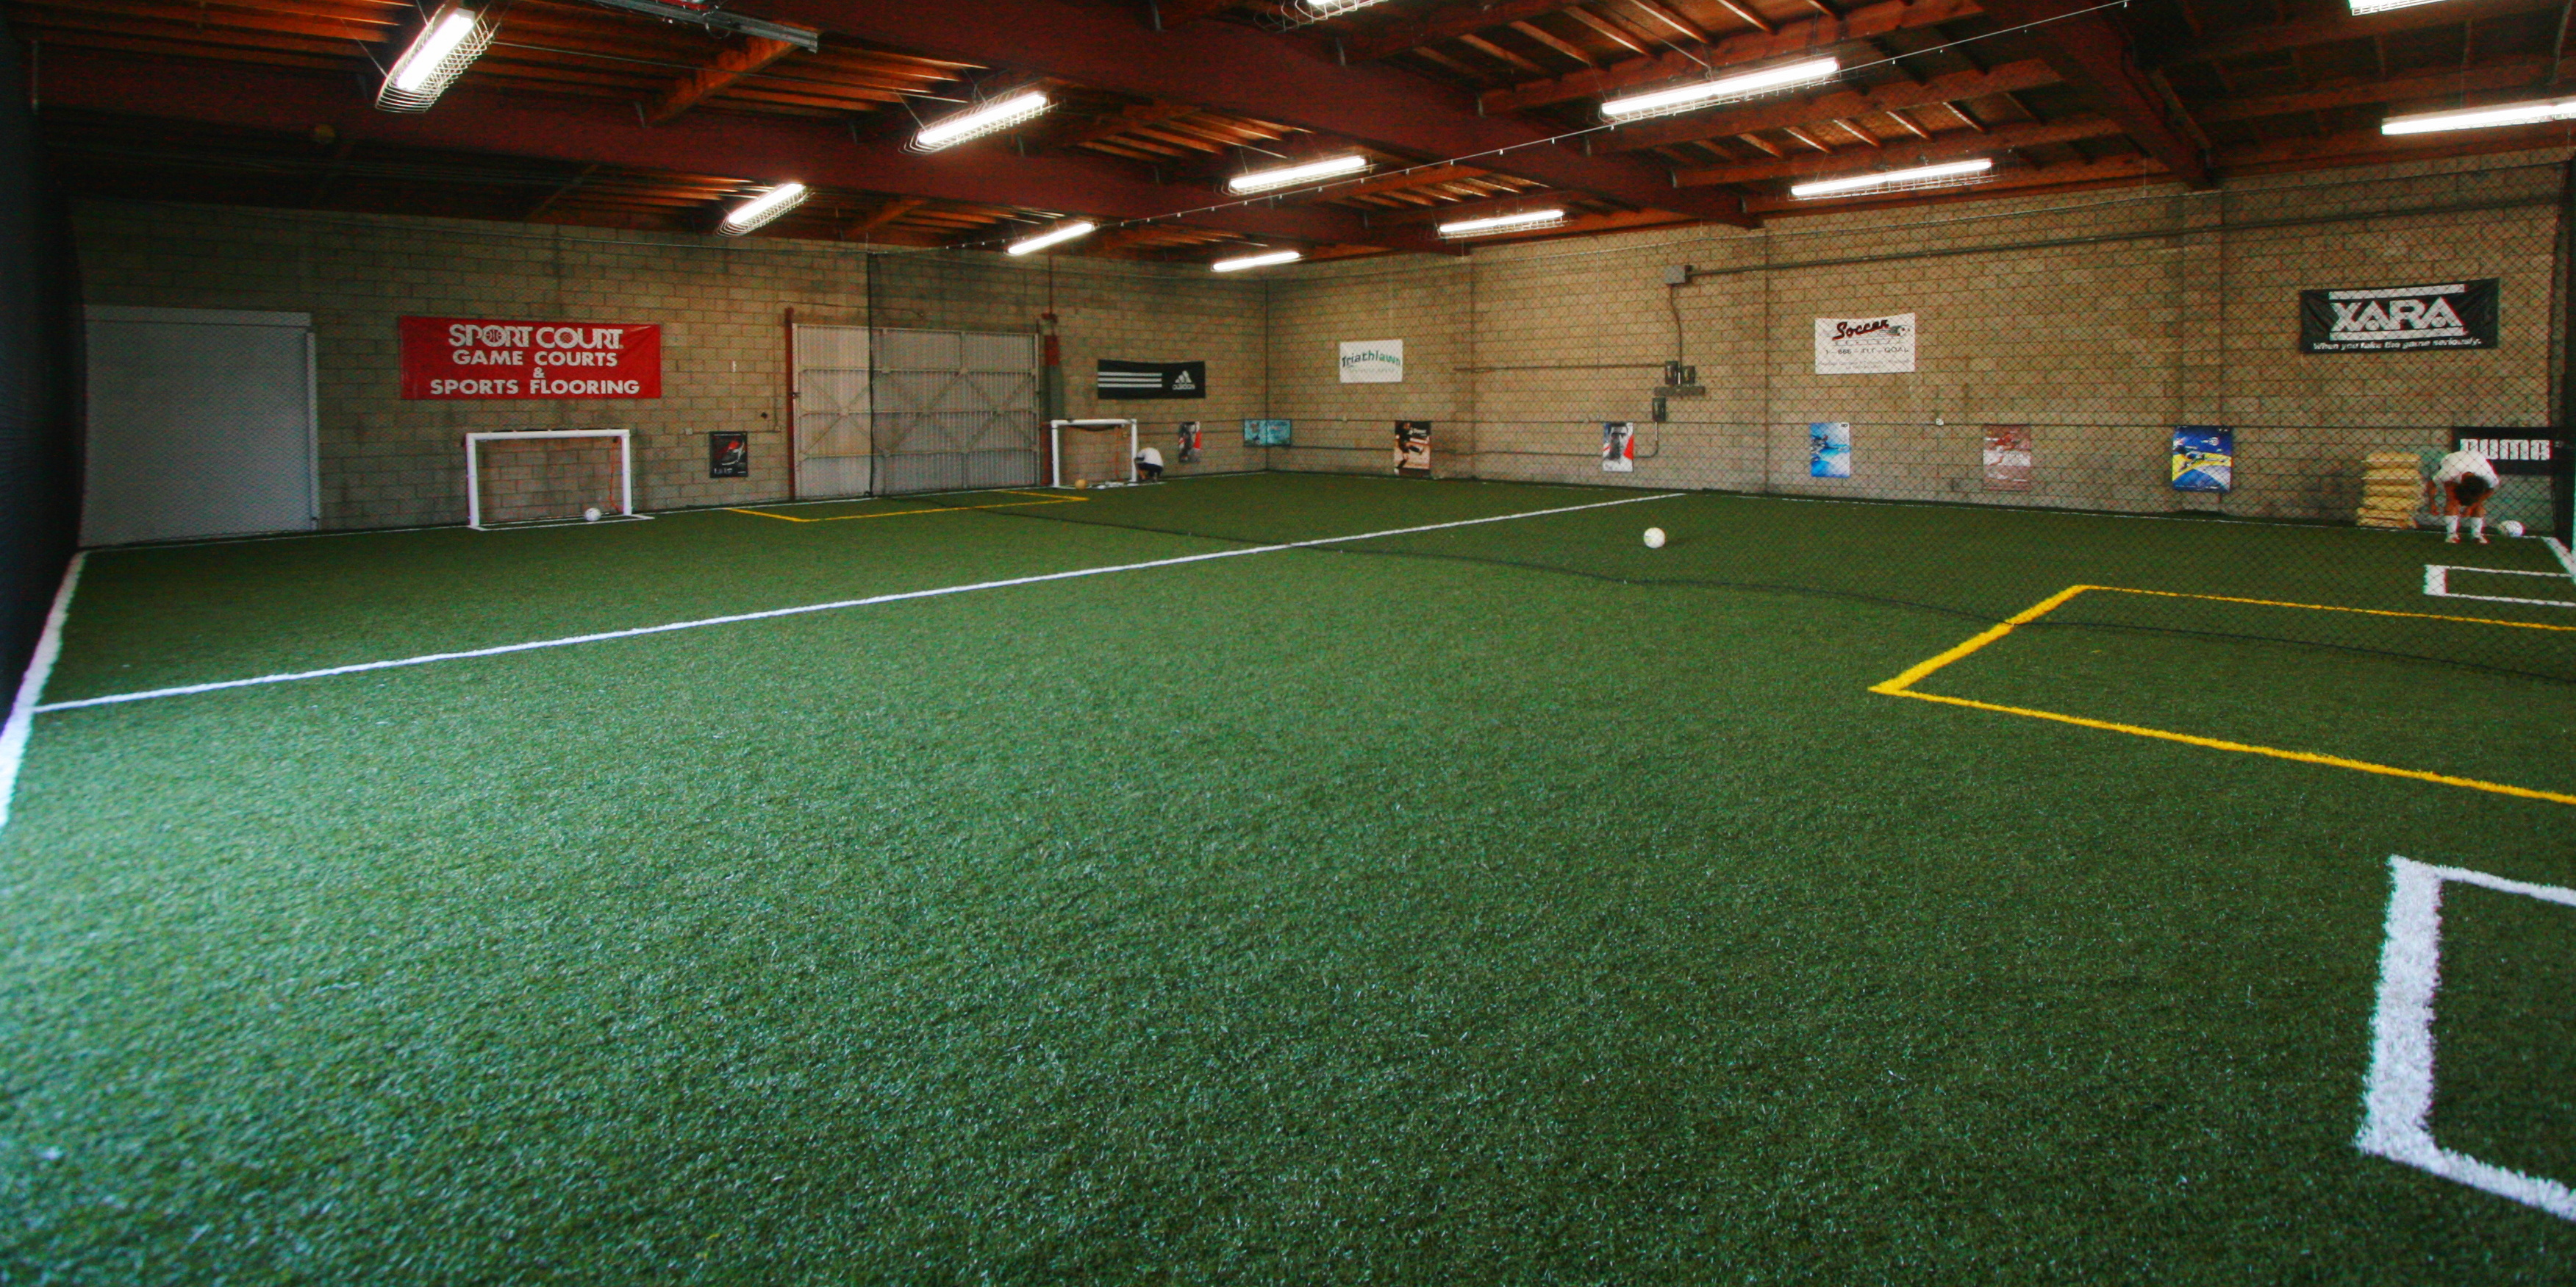 What You Should Look For In An Indoor Soccer Training Facility